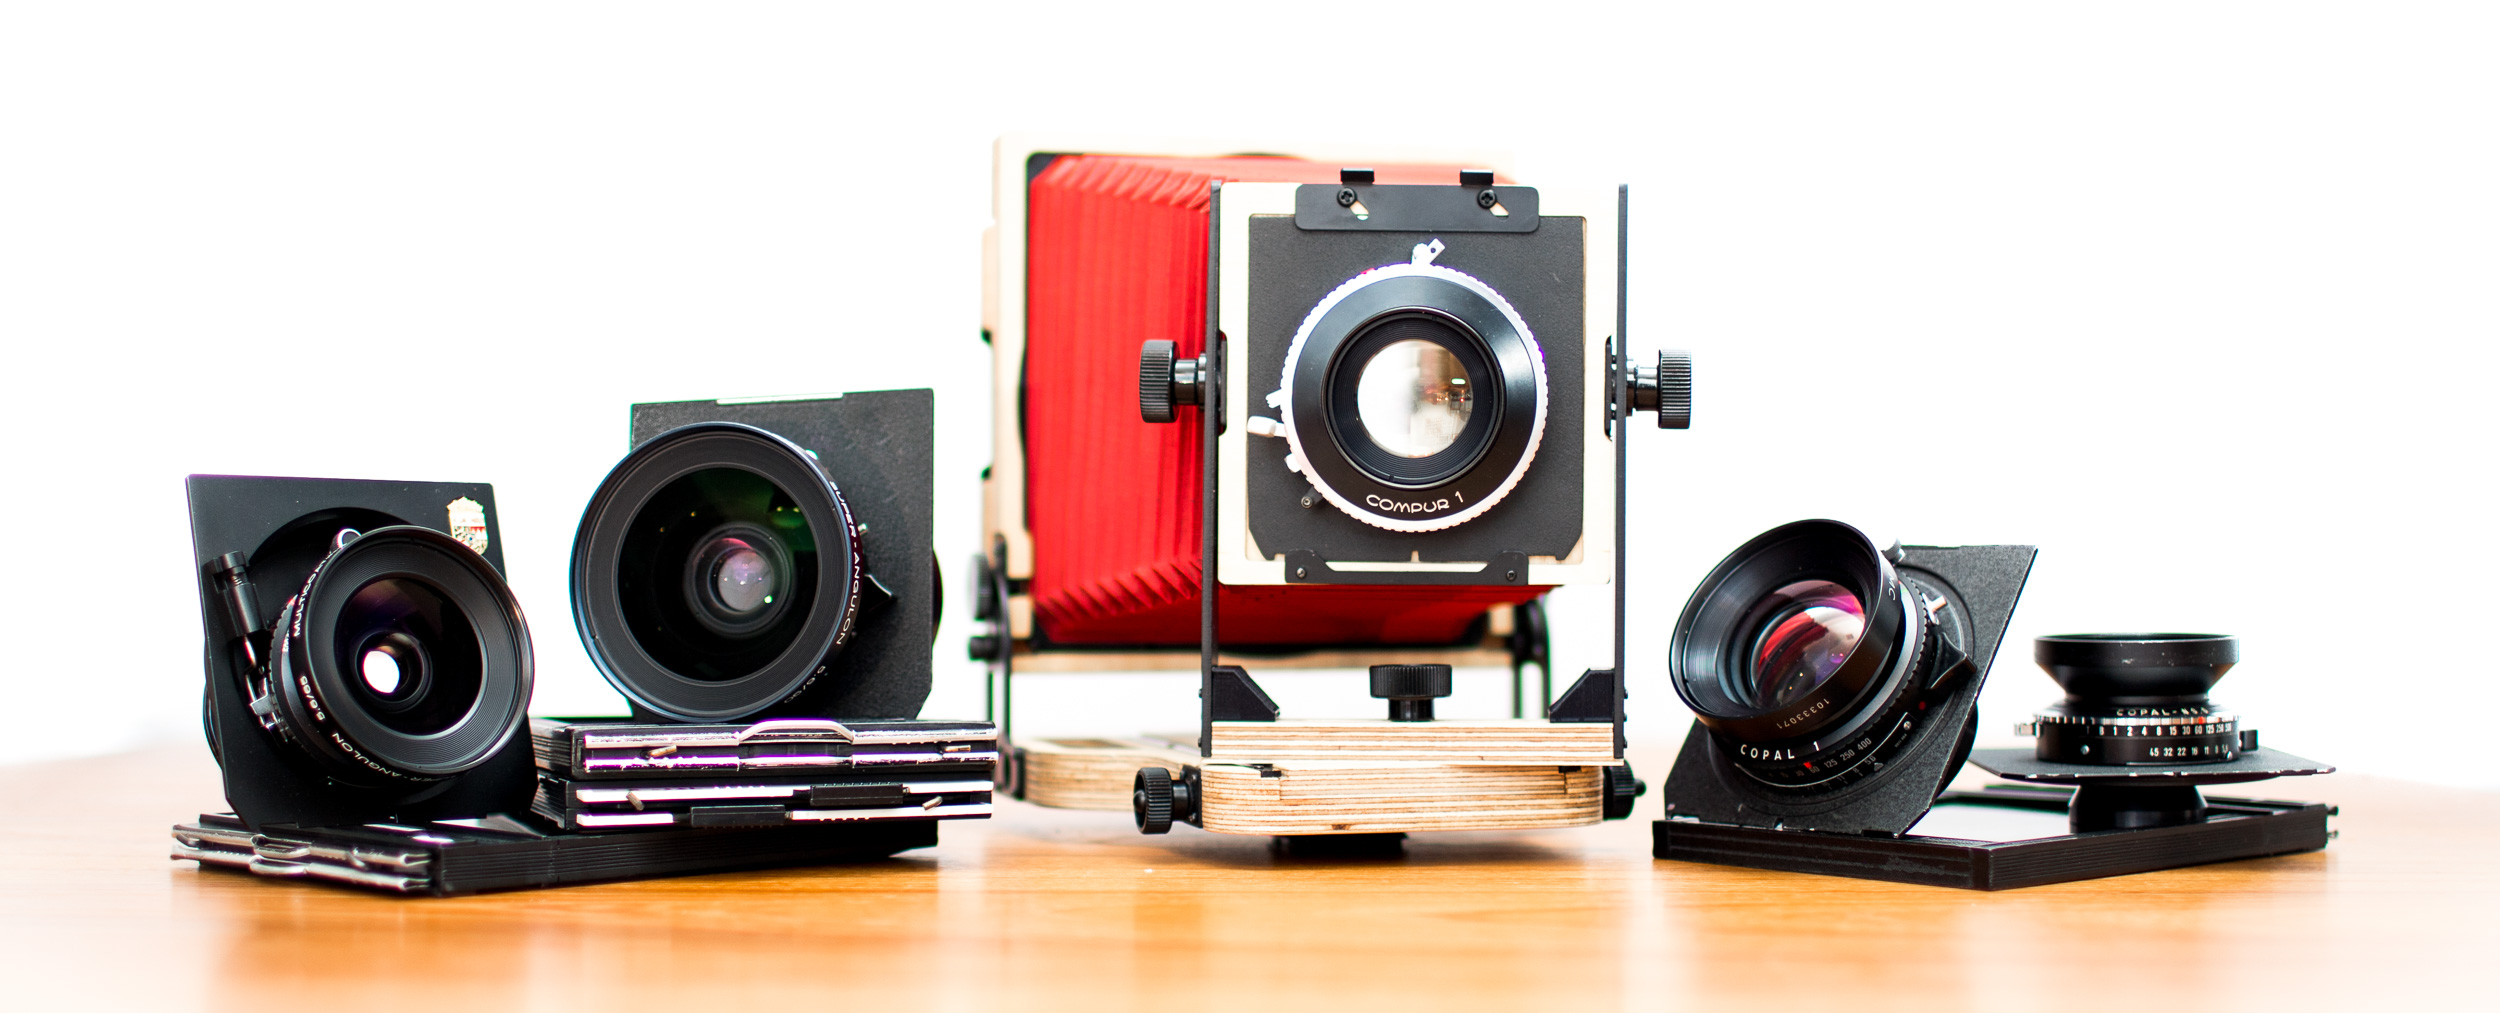 Intrepid 4x5 large format camera kit